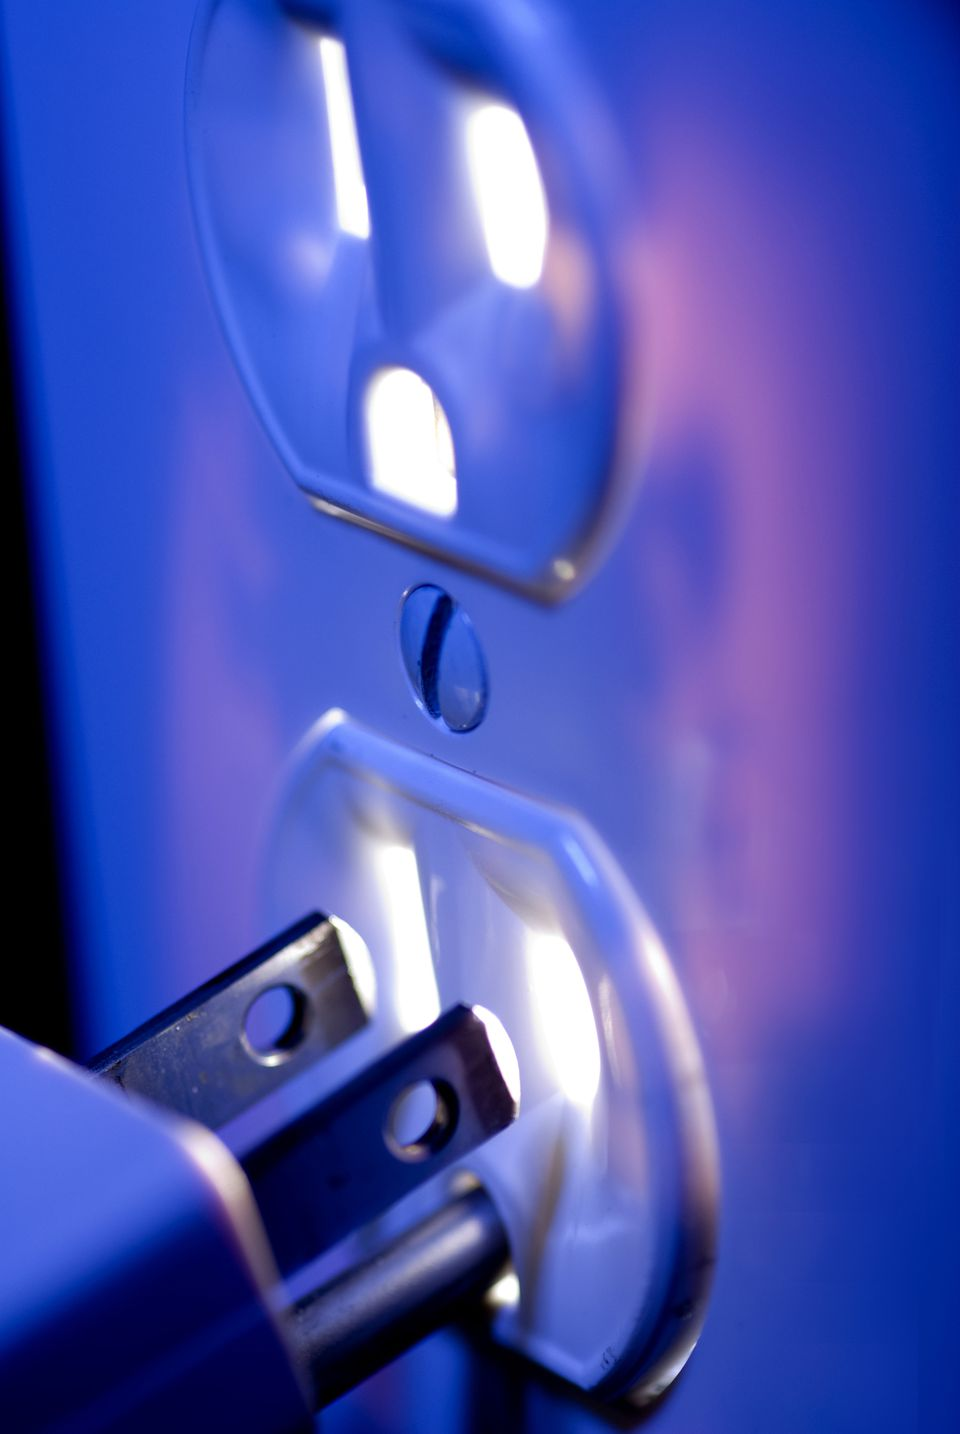 Glowing Blue Electric Outlet